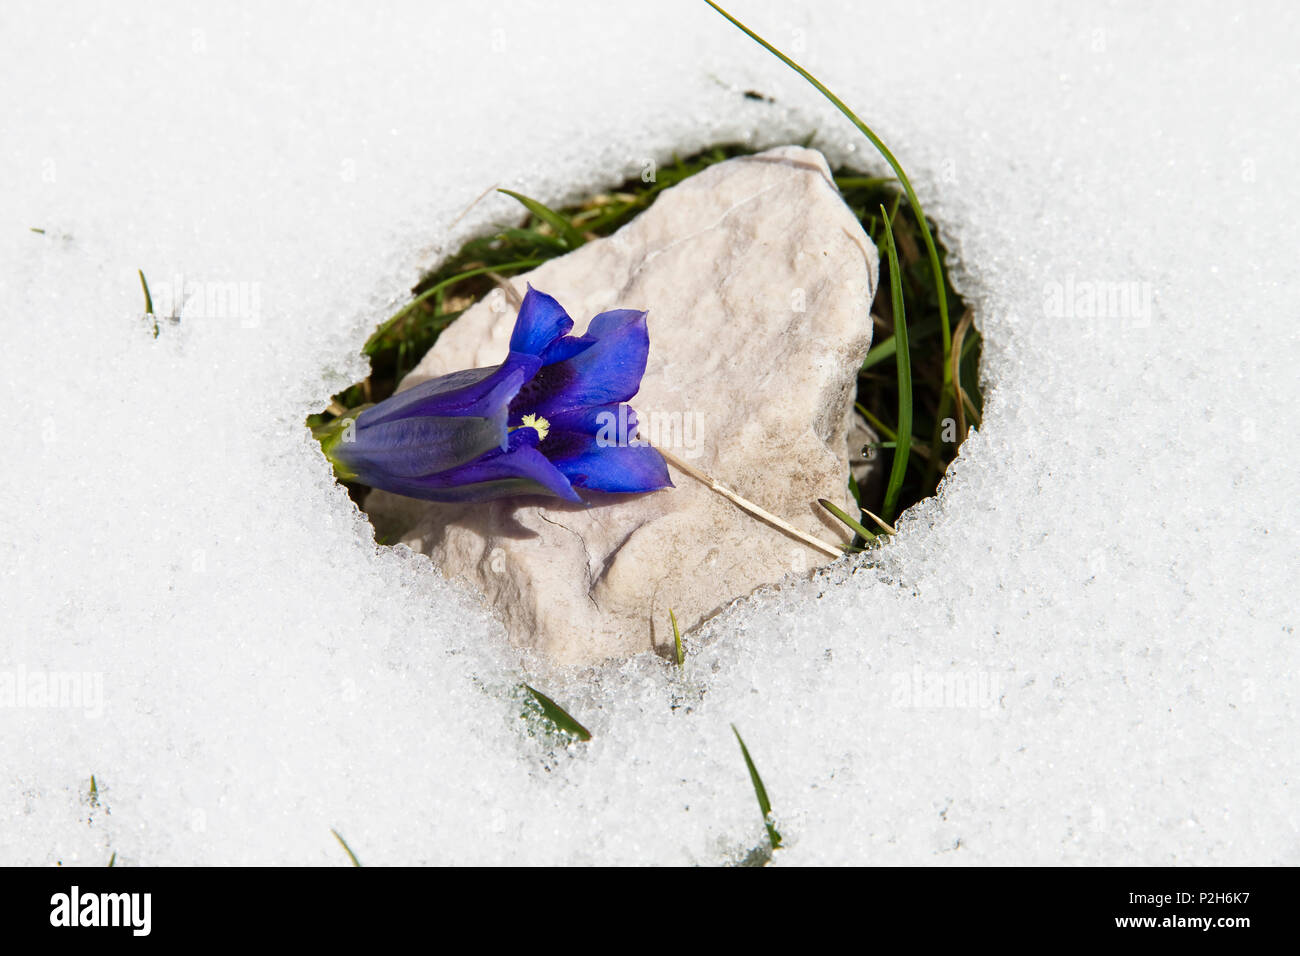 Gentian in snow, Gentiana clusii, Upper Bavaria, Germany, Europe - Stock Image